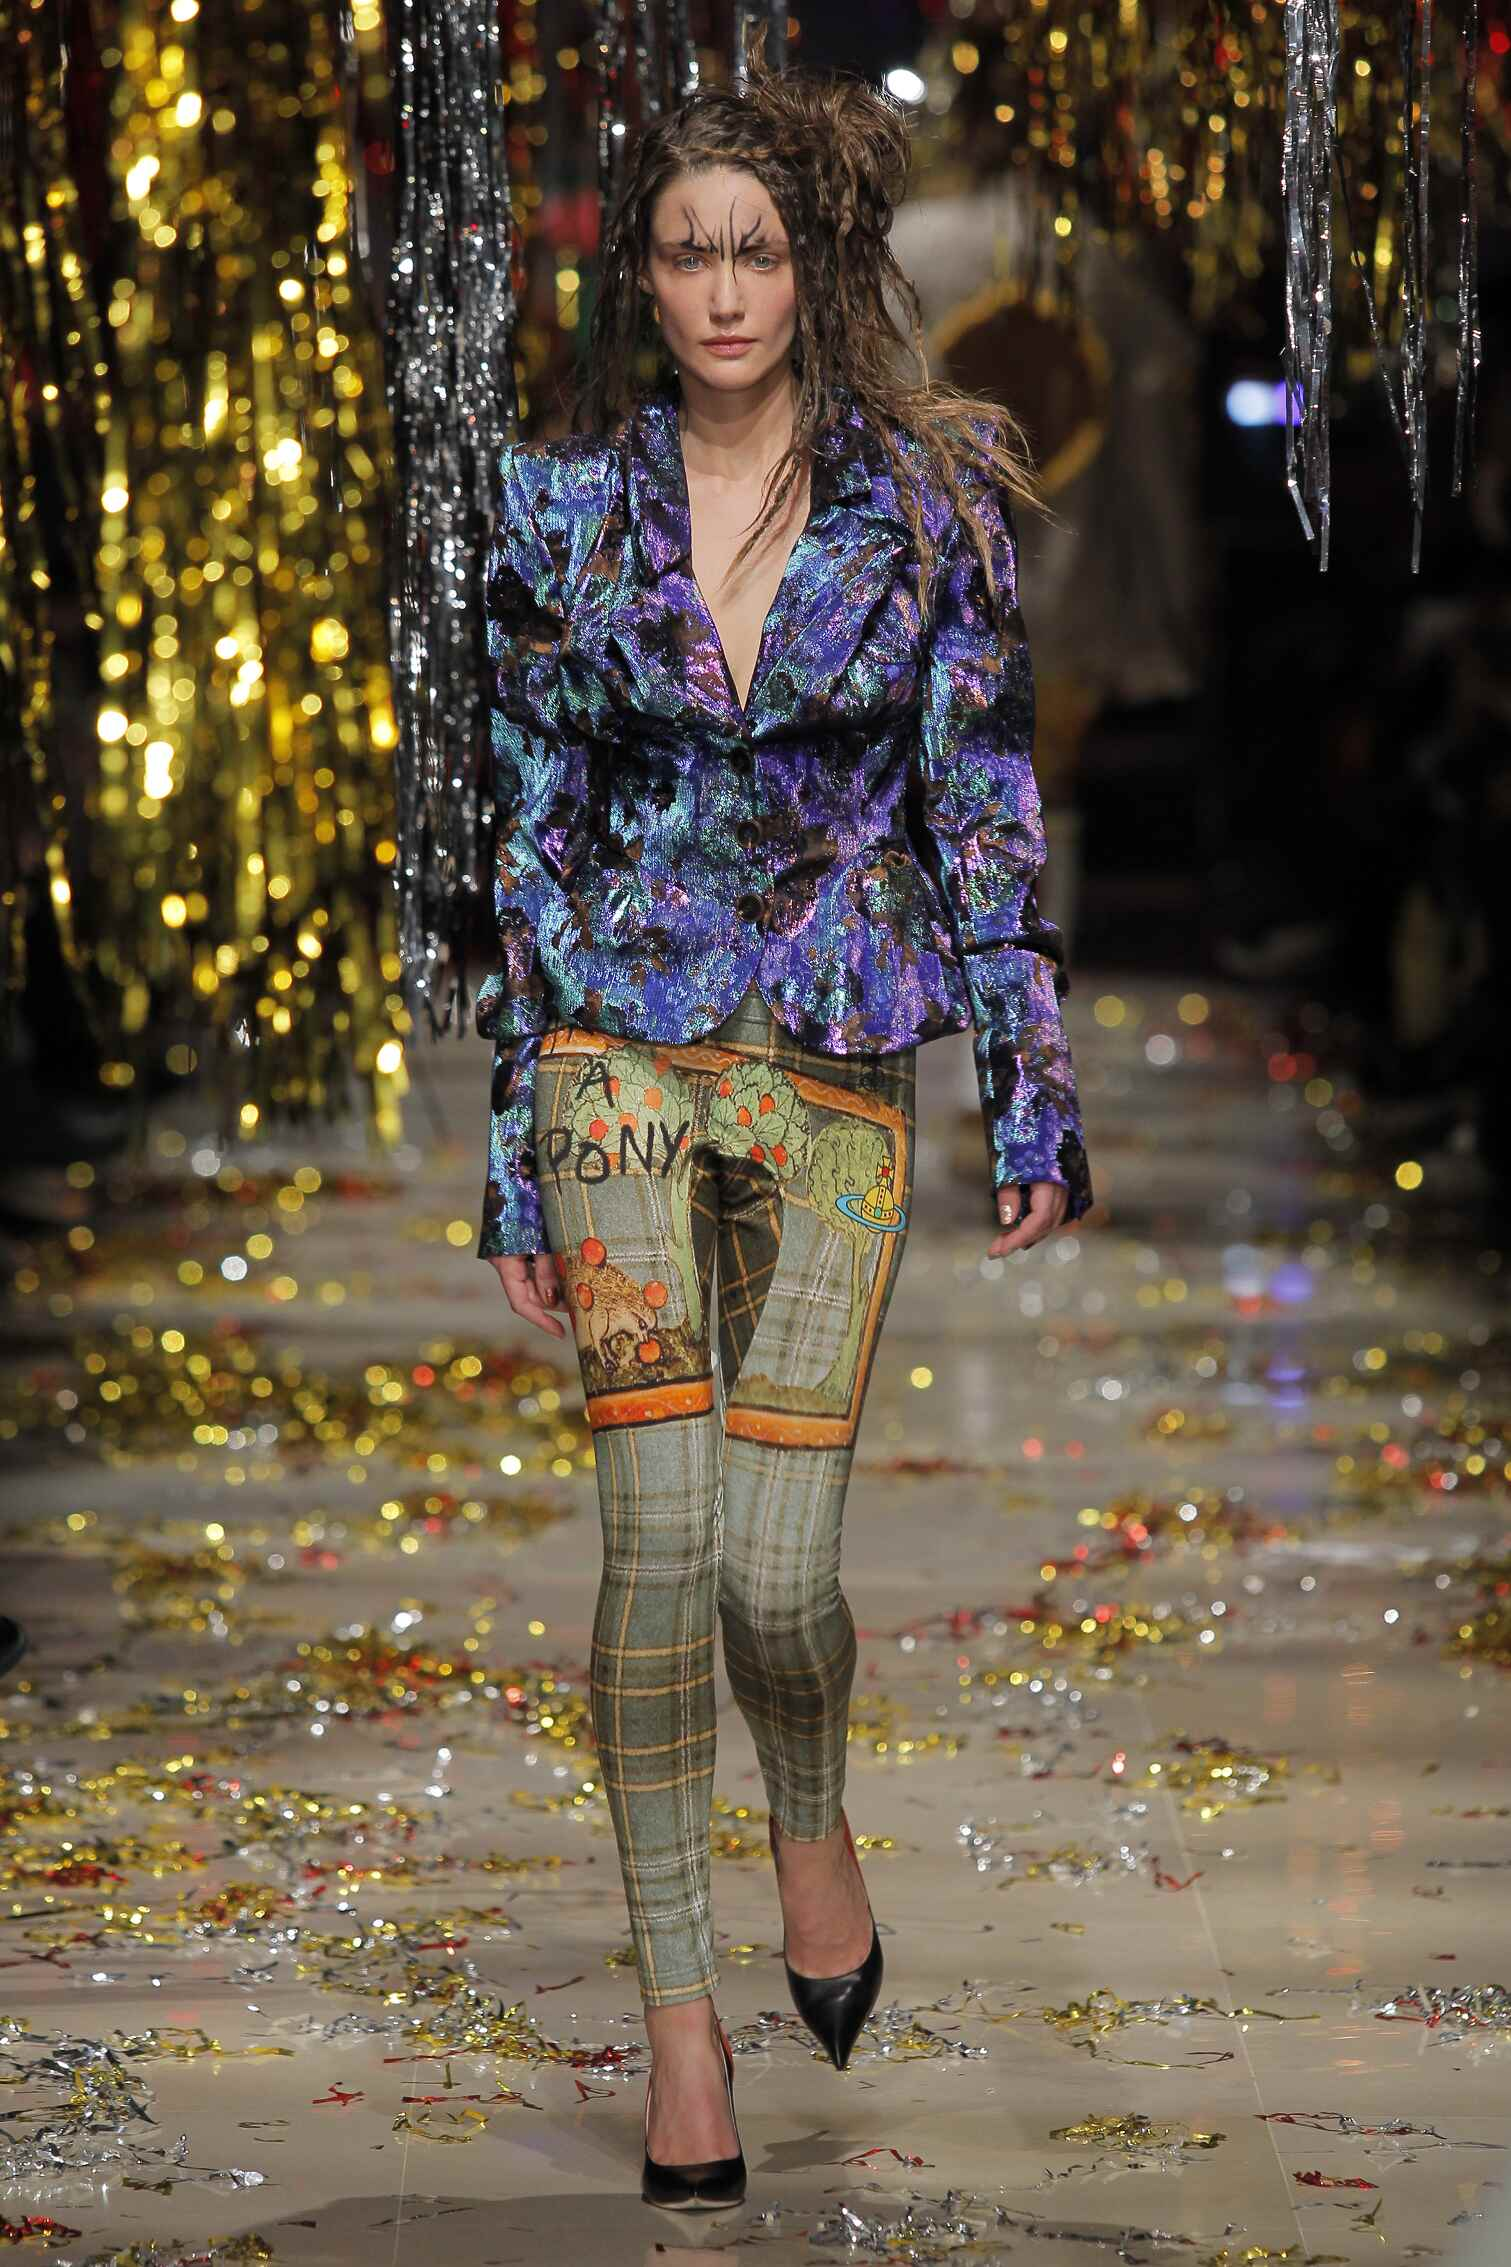 Catwalk Vivienne Westwood Gold Label Fall Winter 2015 16 Women's Collection Paris Fashion Week